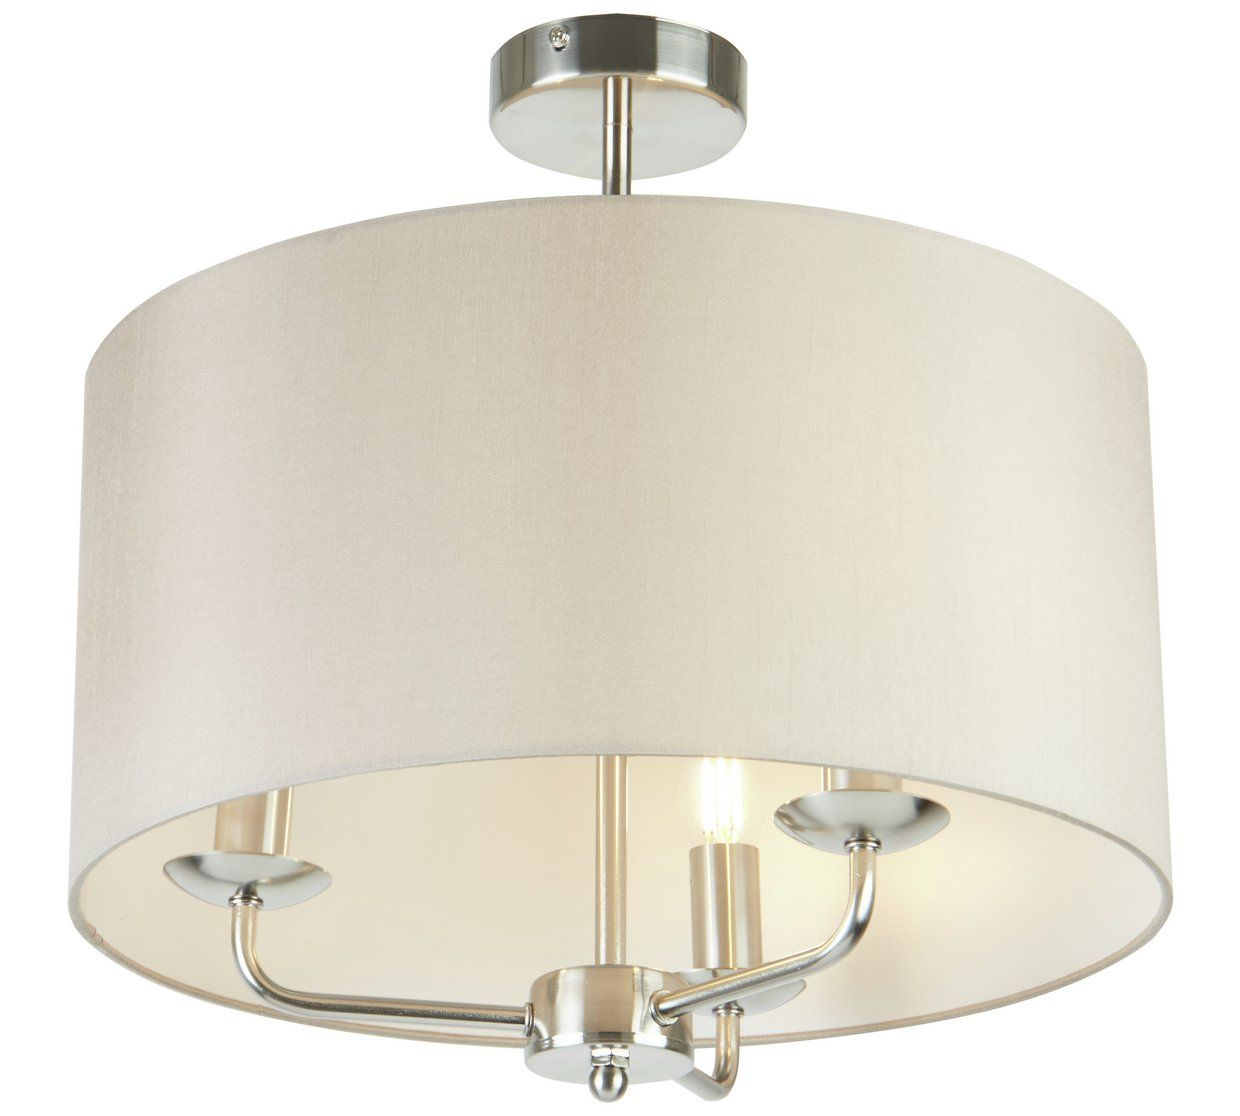 Home Grace 3 Light Ceiling Fitting Silver Ceiling Lights Wall Lights Ceiling